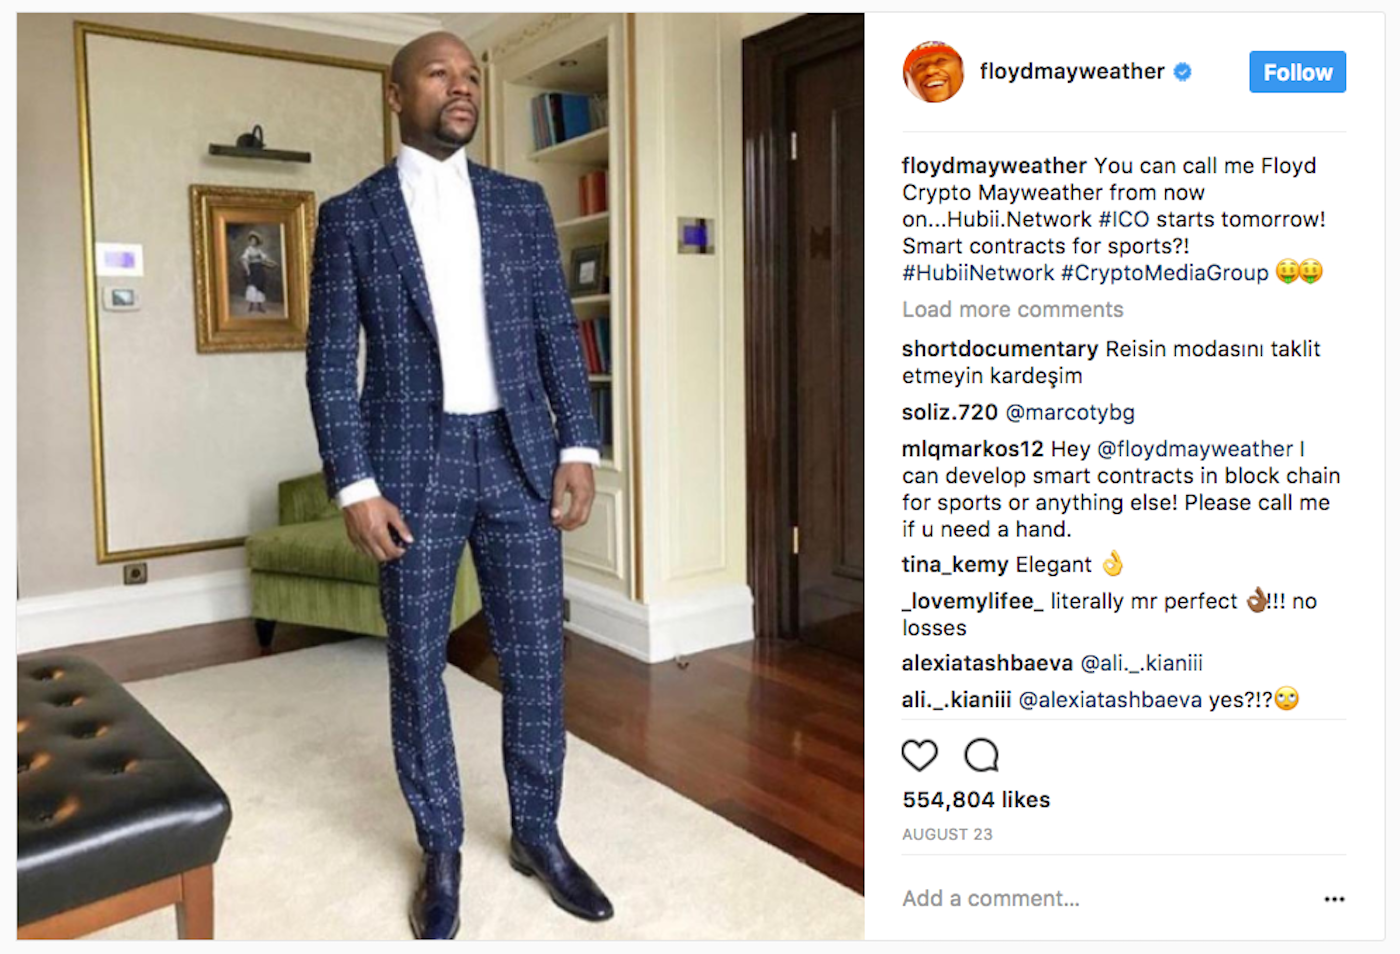 floyd mayweather invested in ico